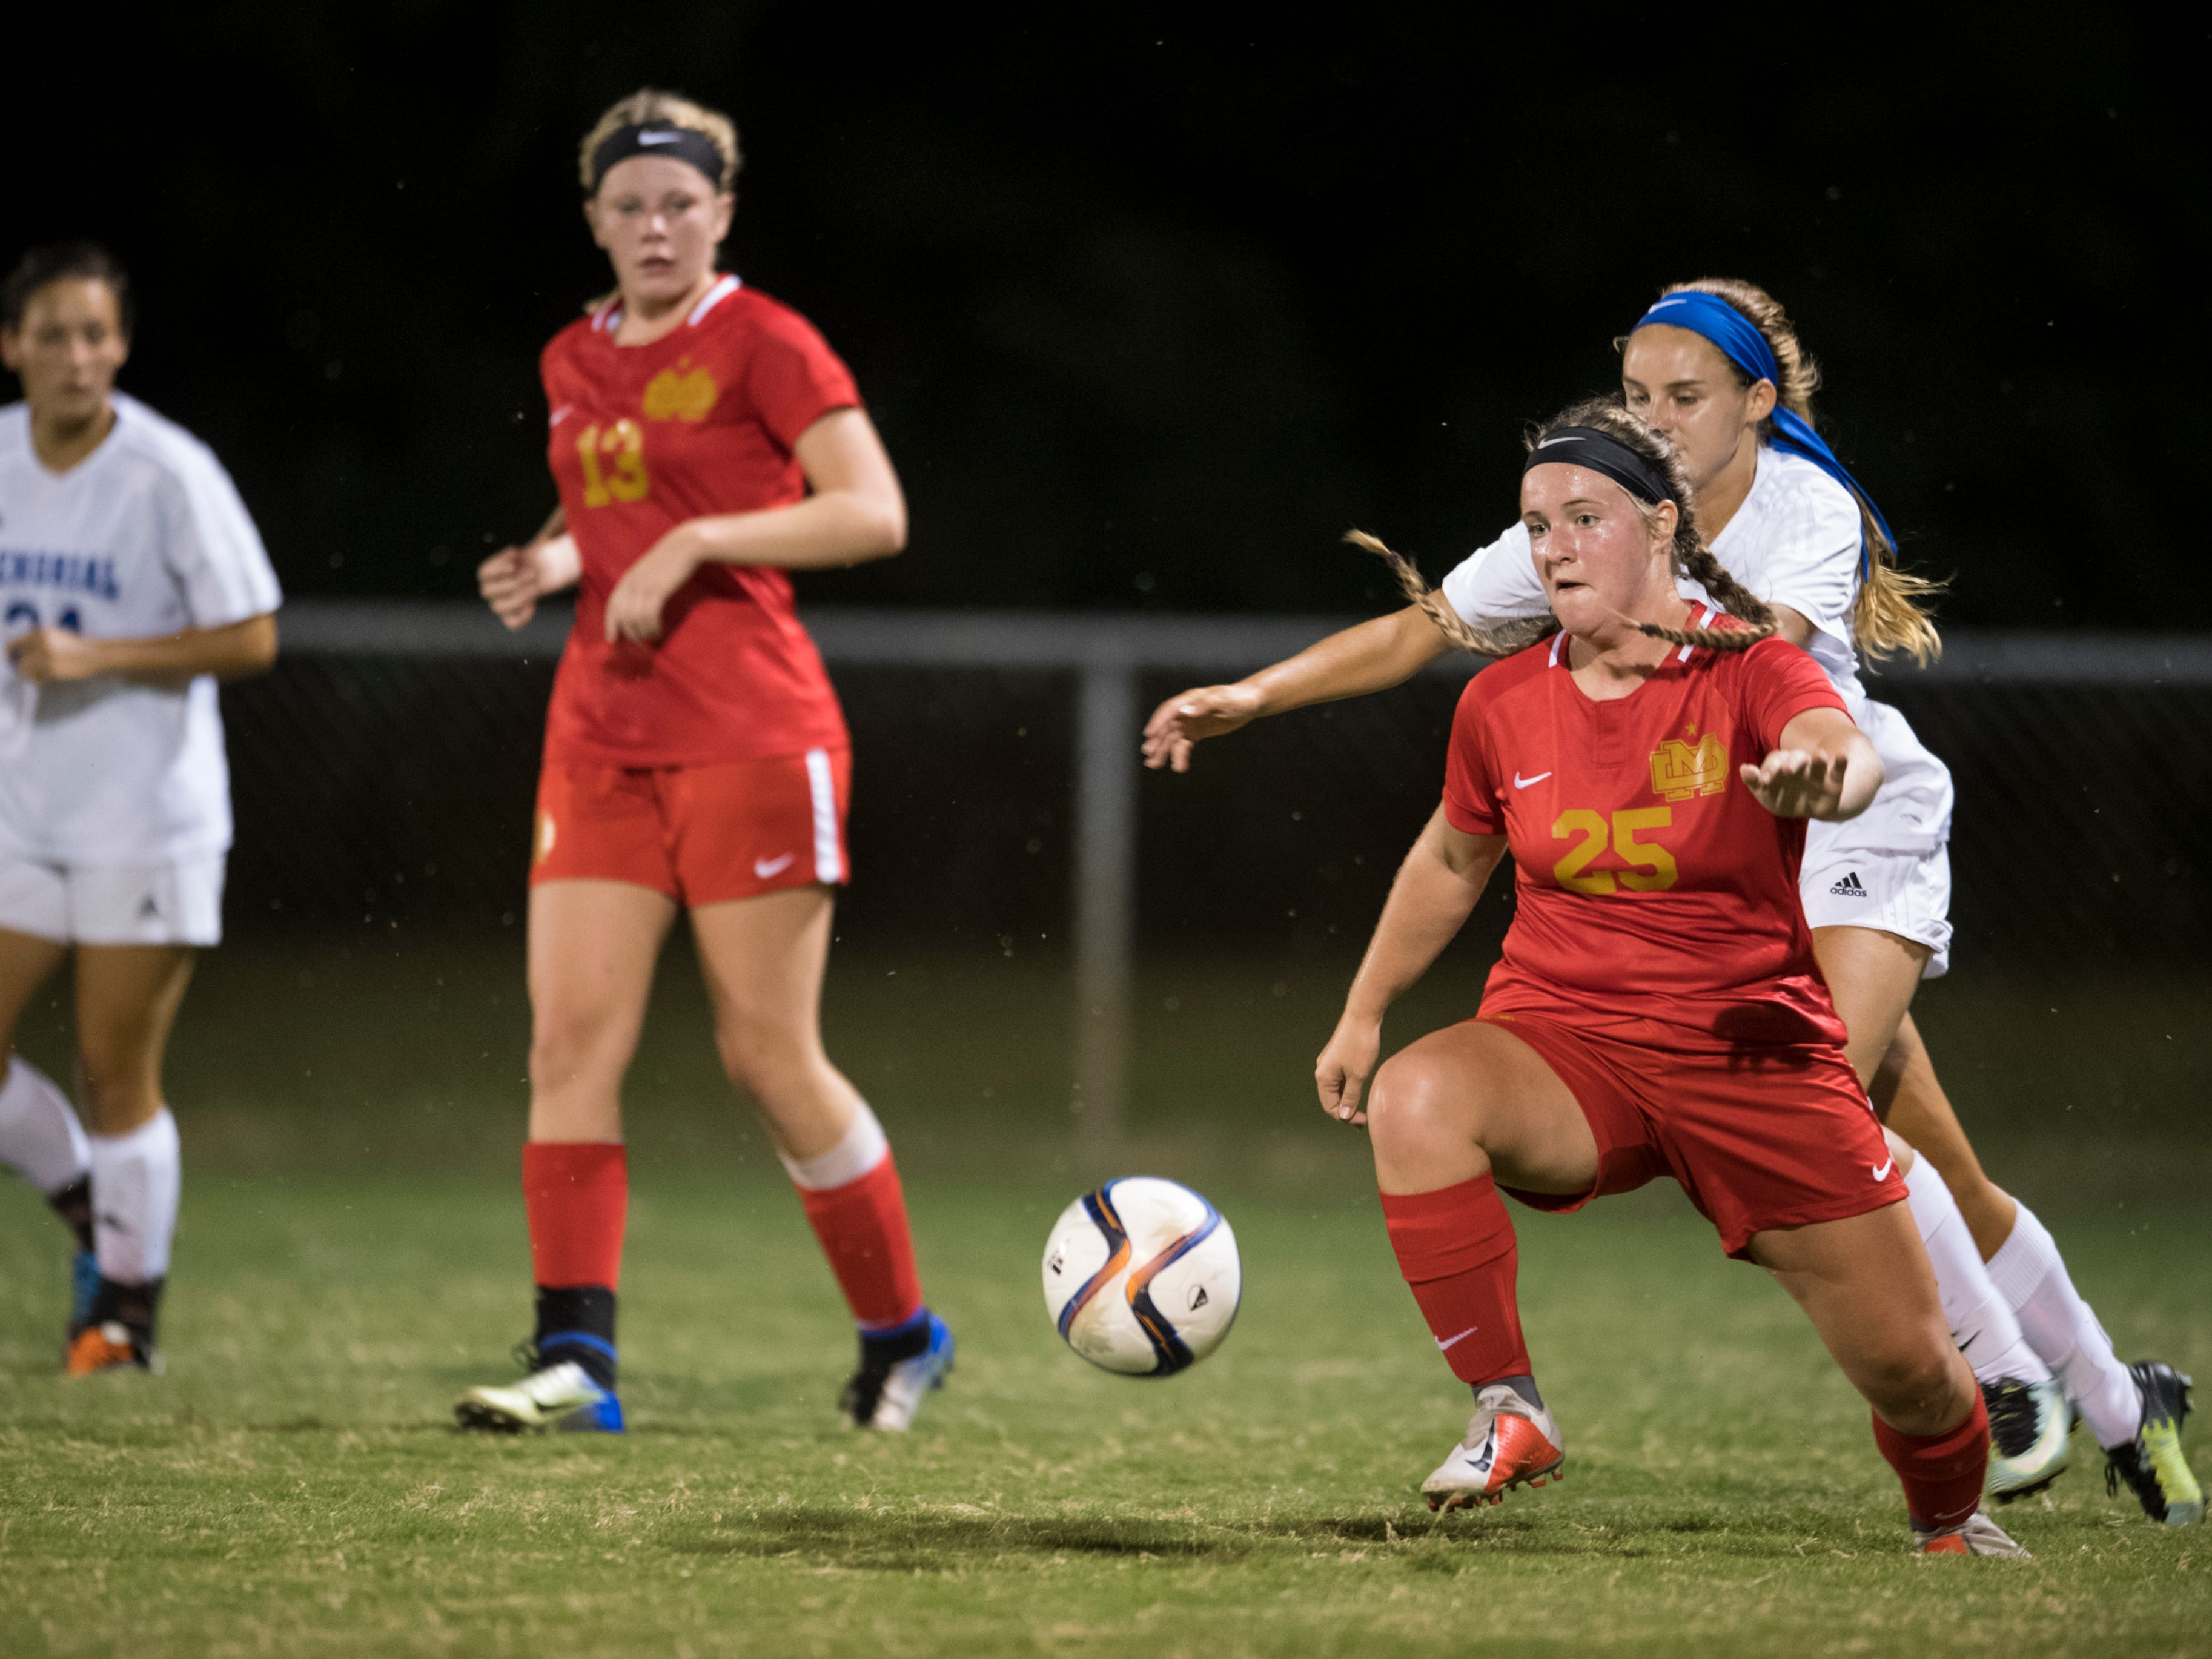 Mater Dei's Macey Adler (25) blocks Memorial's Kelly Bersch (8) from the ball at the EVSC Soccer Fields in Evansville, Ind., Monday, Aug. 20, 2018. The Tigers defeated the Wildcats 4-0.